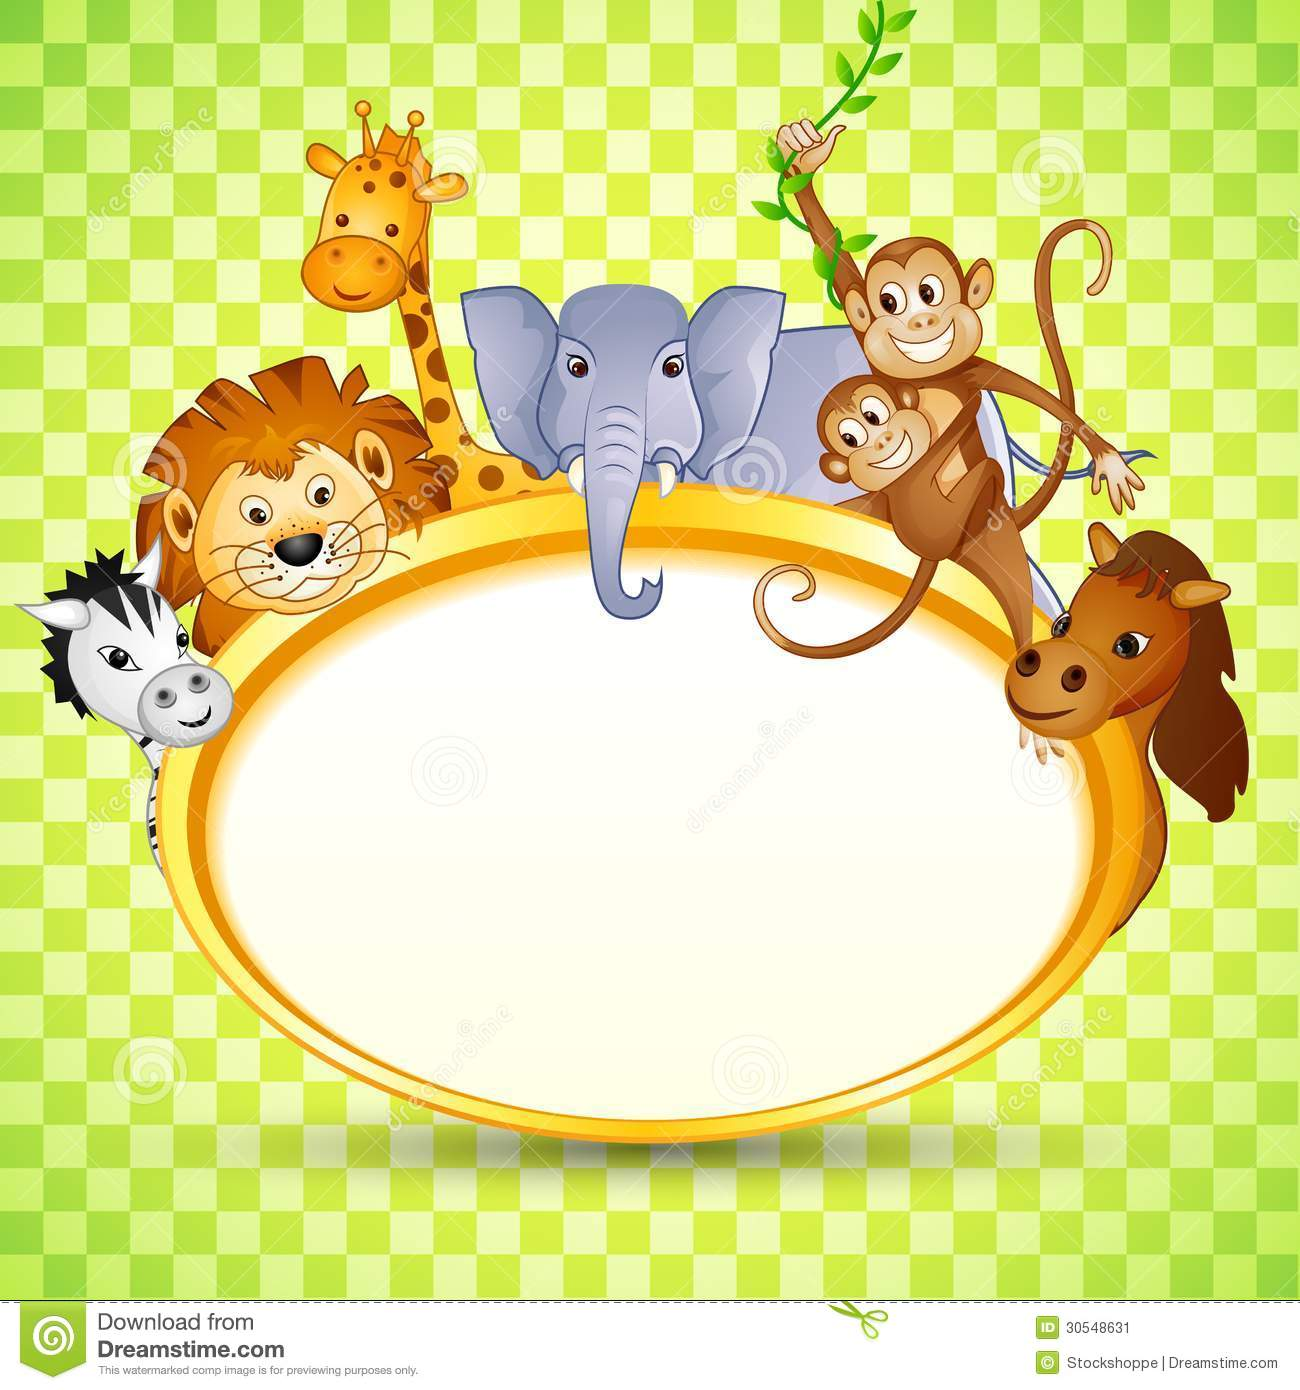 King Of The Jungle Baby Shower Invitations as beautiful invitations sample